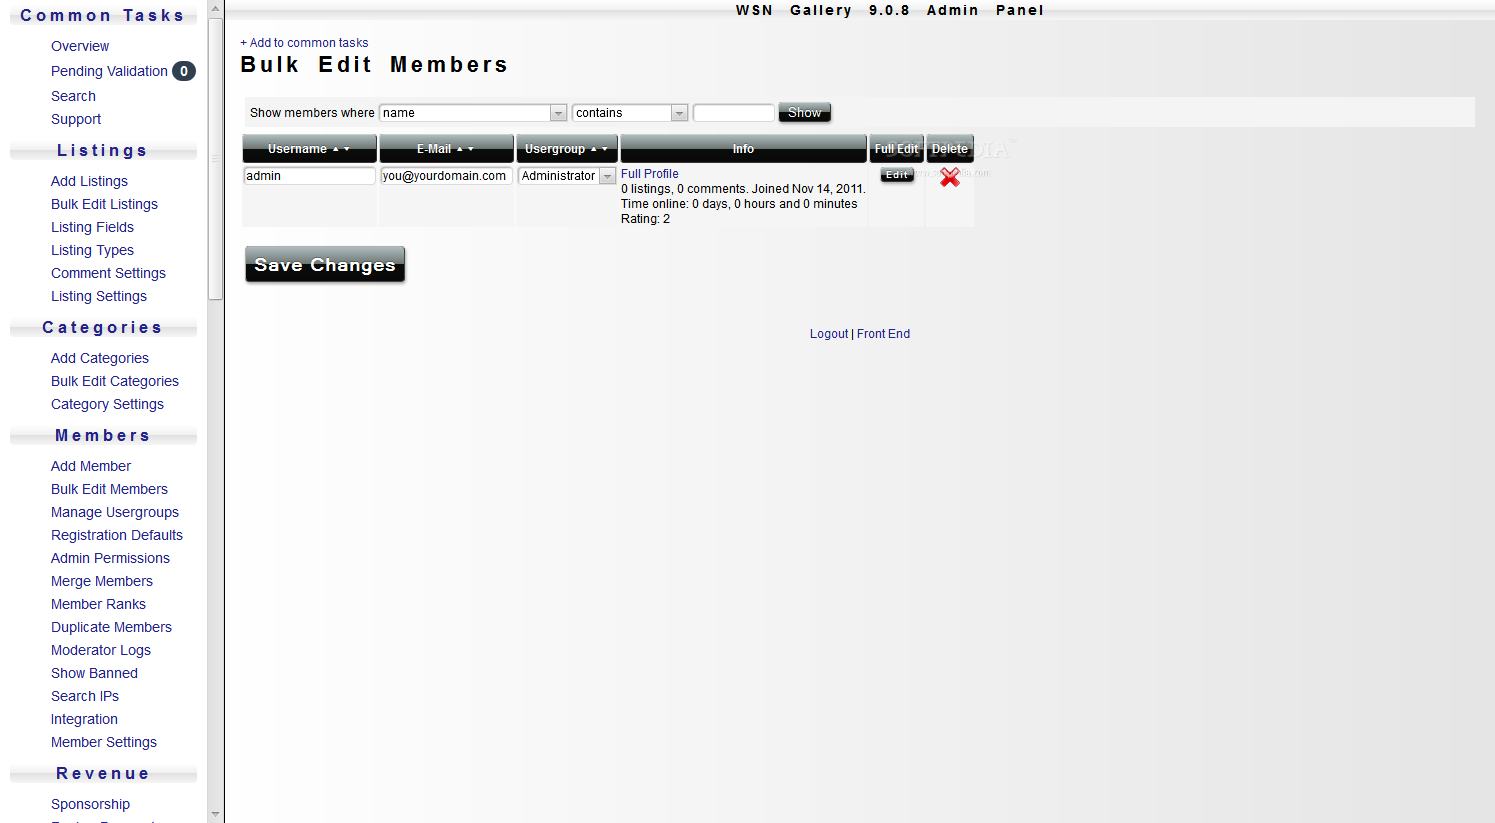 WSN Gallery - Members can also register and edited at later points inside the WSN Gallery backend